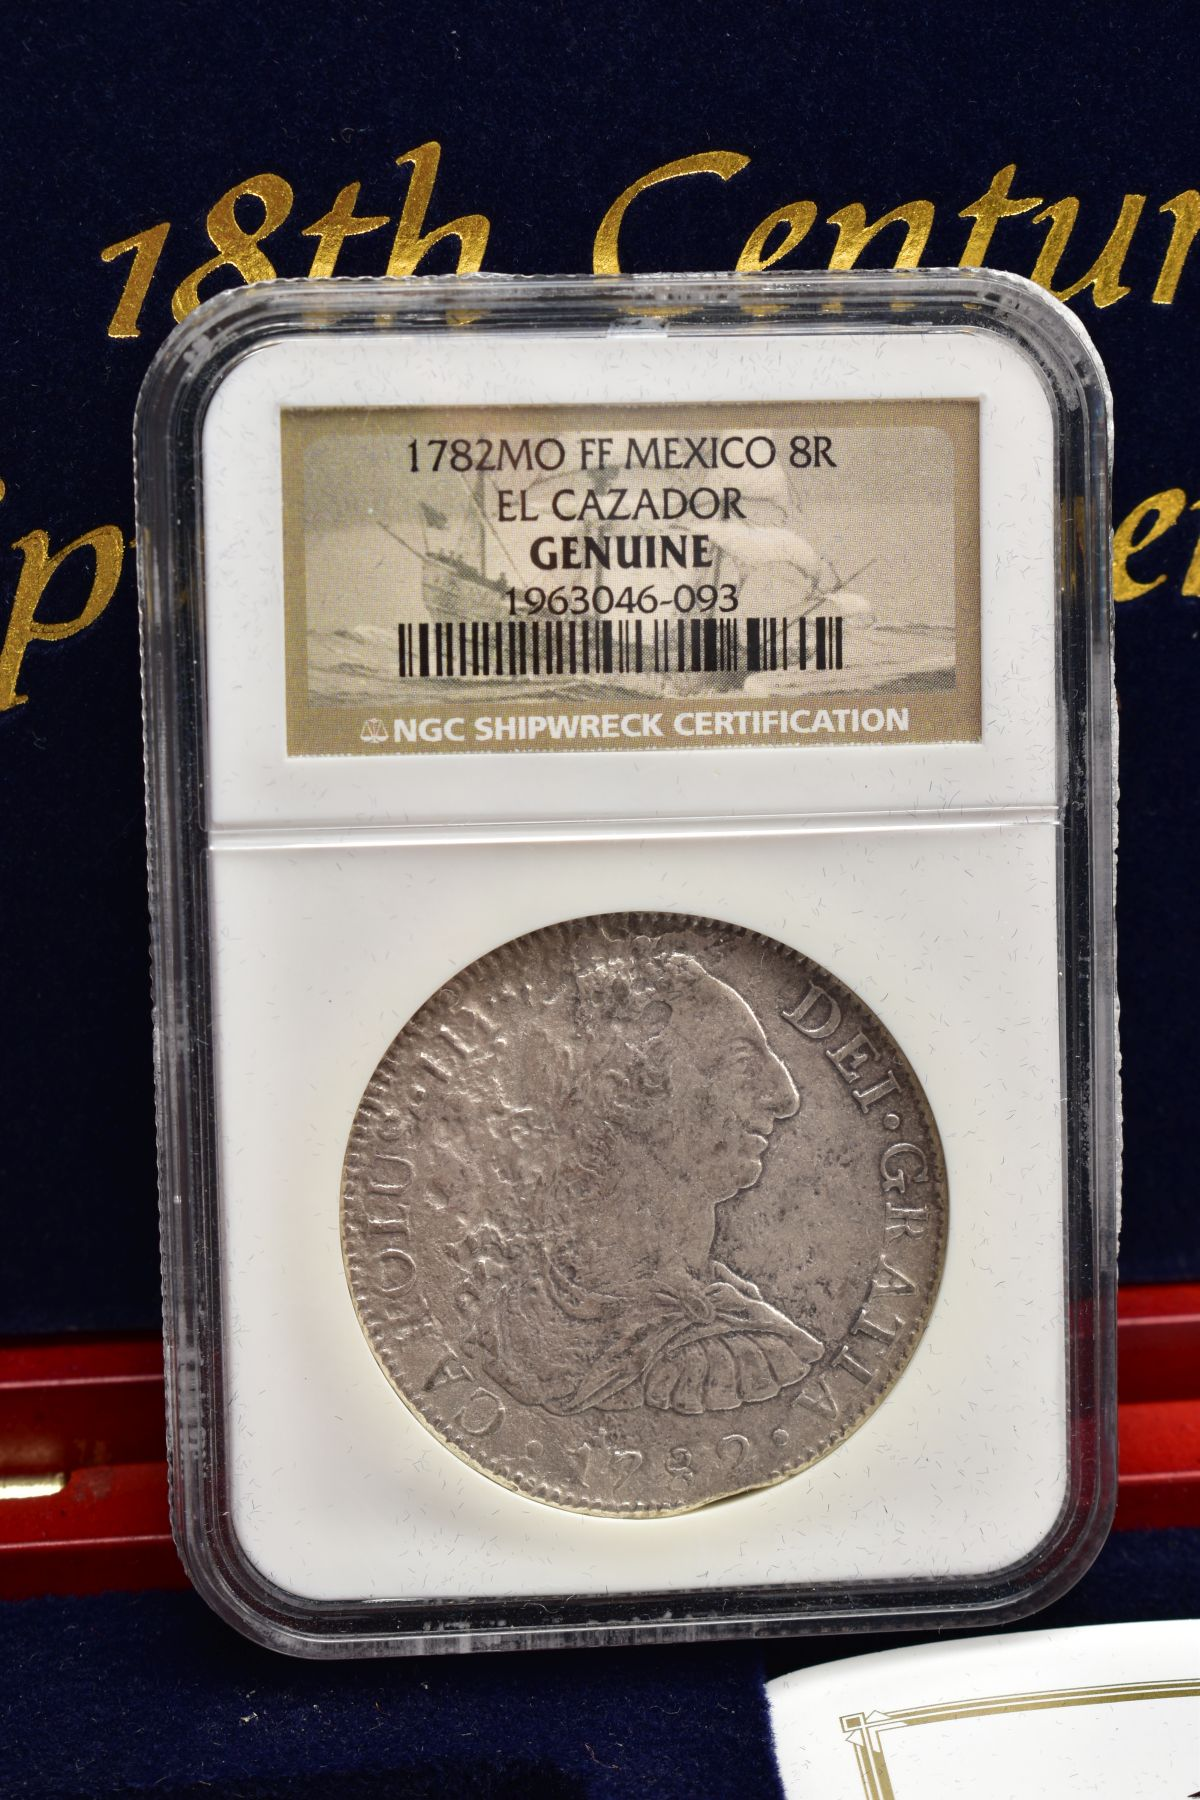 A SLABBED NGC SHIPWRECK CERTIFICATION OF A 18TH CENTURY 1782 SILVER EIGHT REALES COIN with - Image 2 of 3